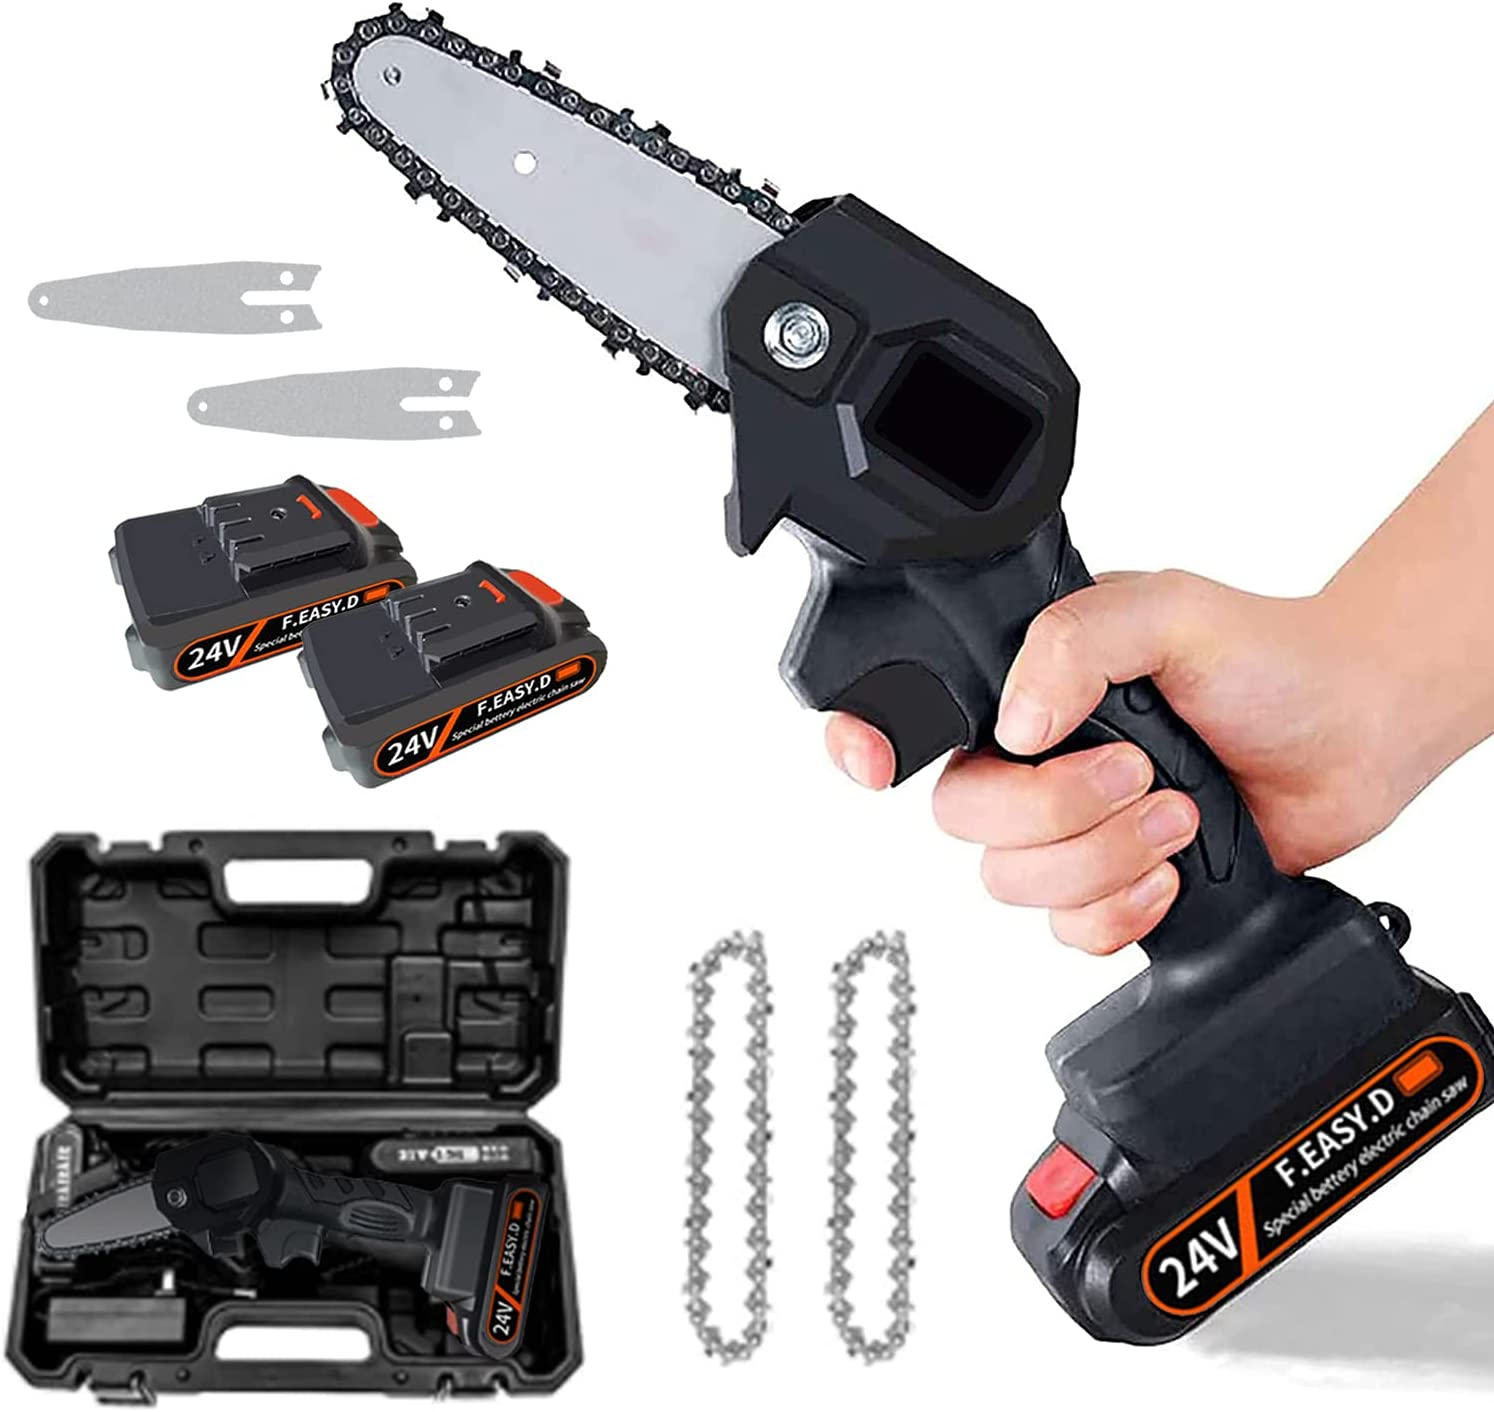 Department store Mini Chainsaw Cordless 1.3kg Ultra-Light Rechargeable NEW before selling